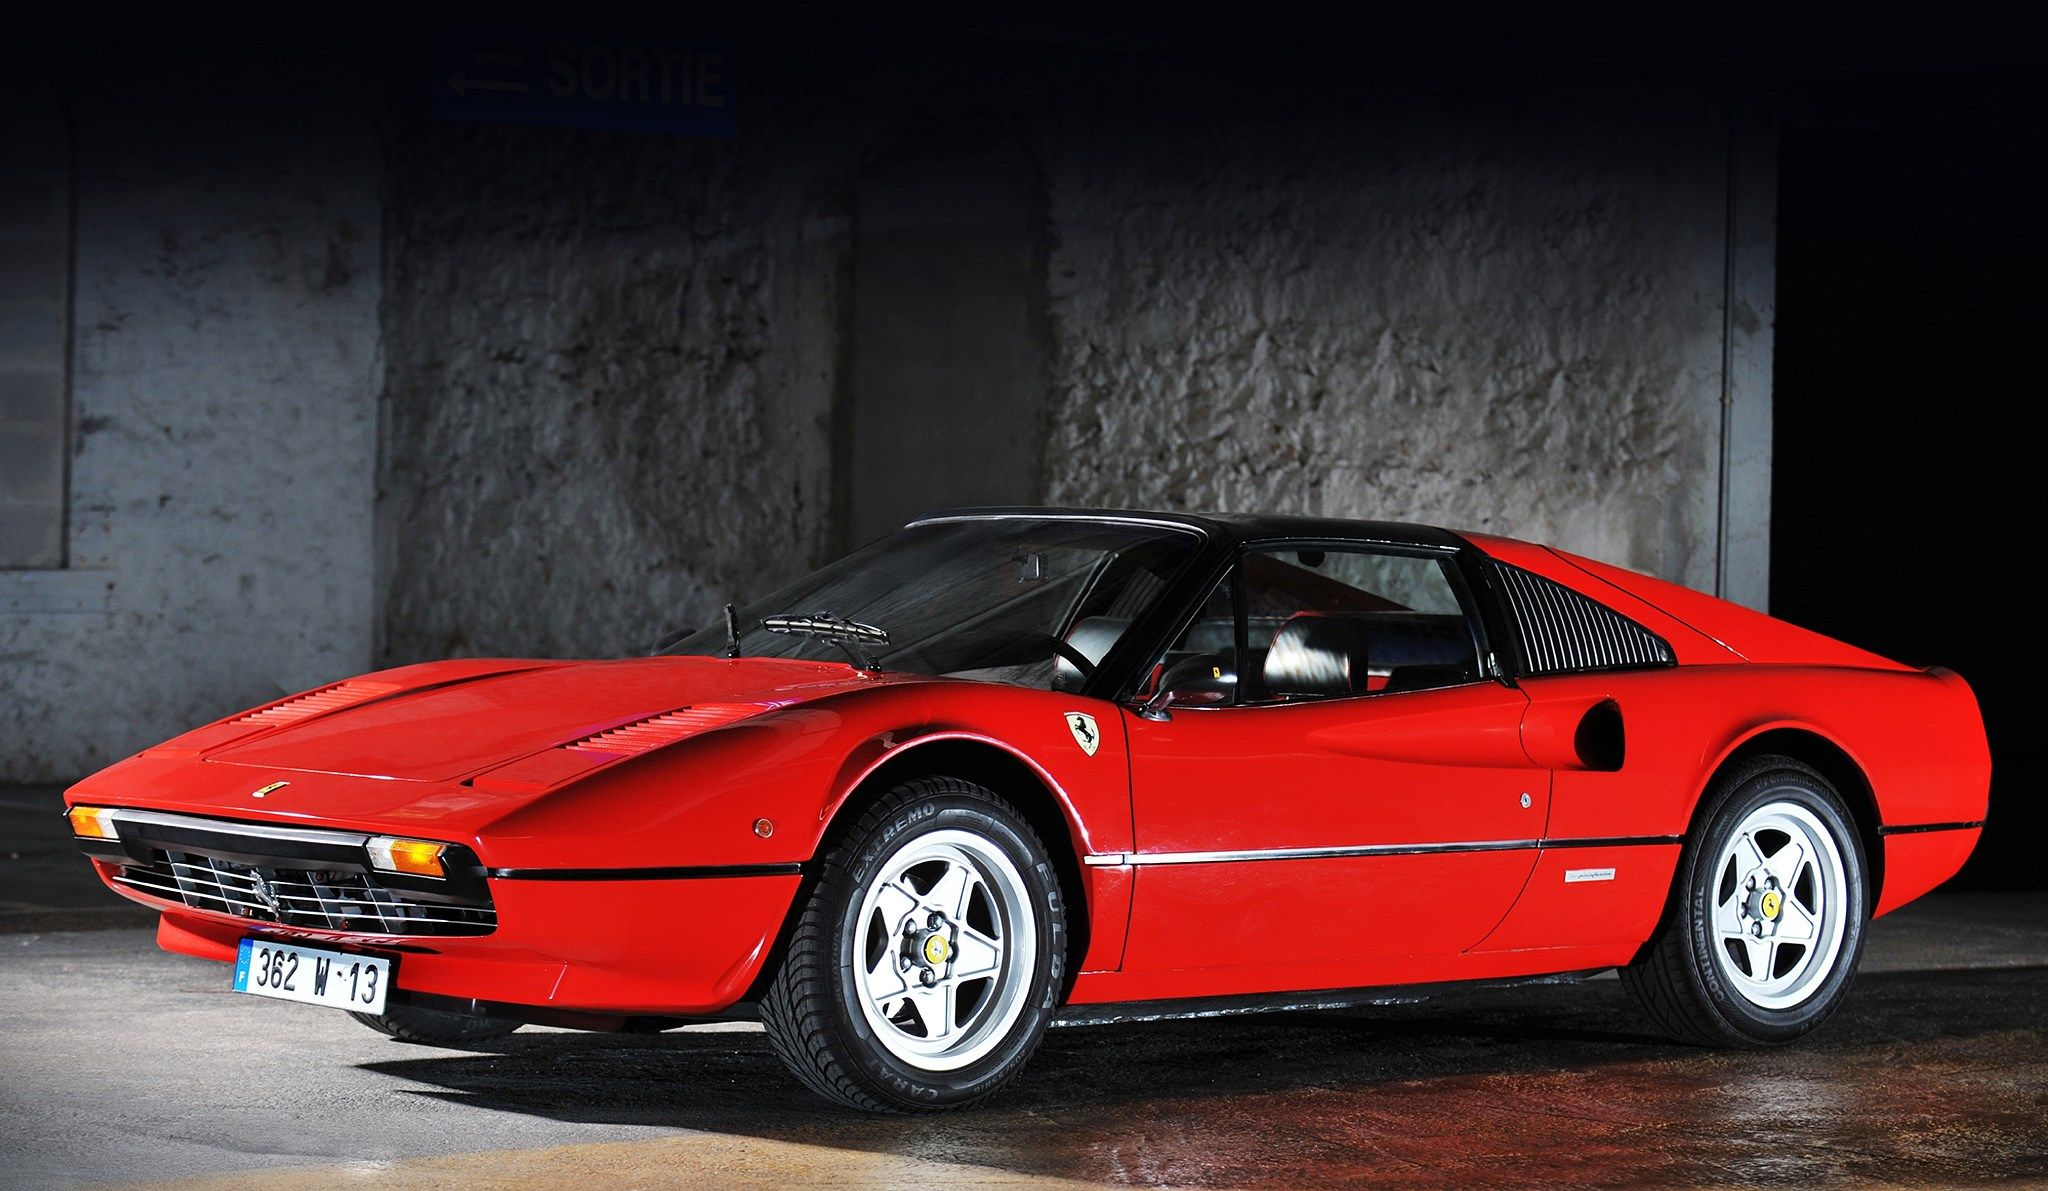 Hq Res Ferrari 308 Gts Picture 2048x1191 424 Kb Retro Cars Ferrari Car